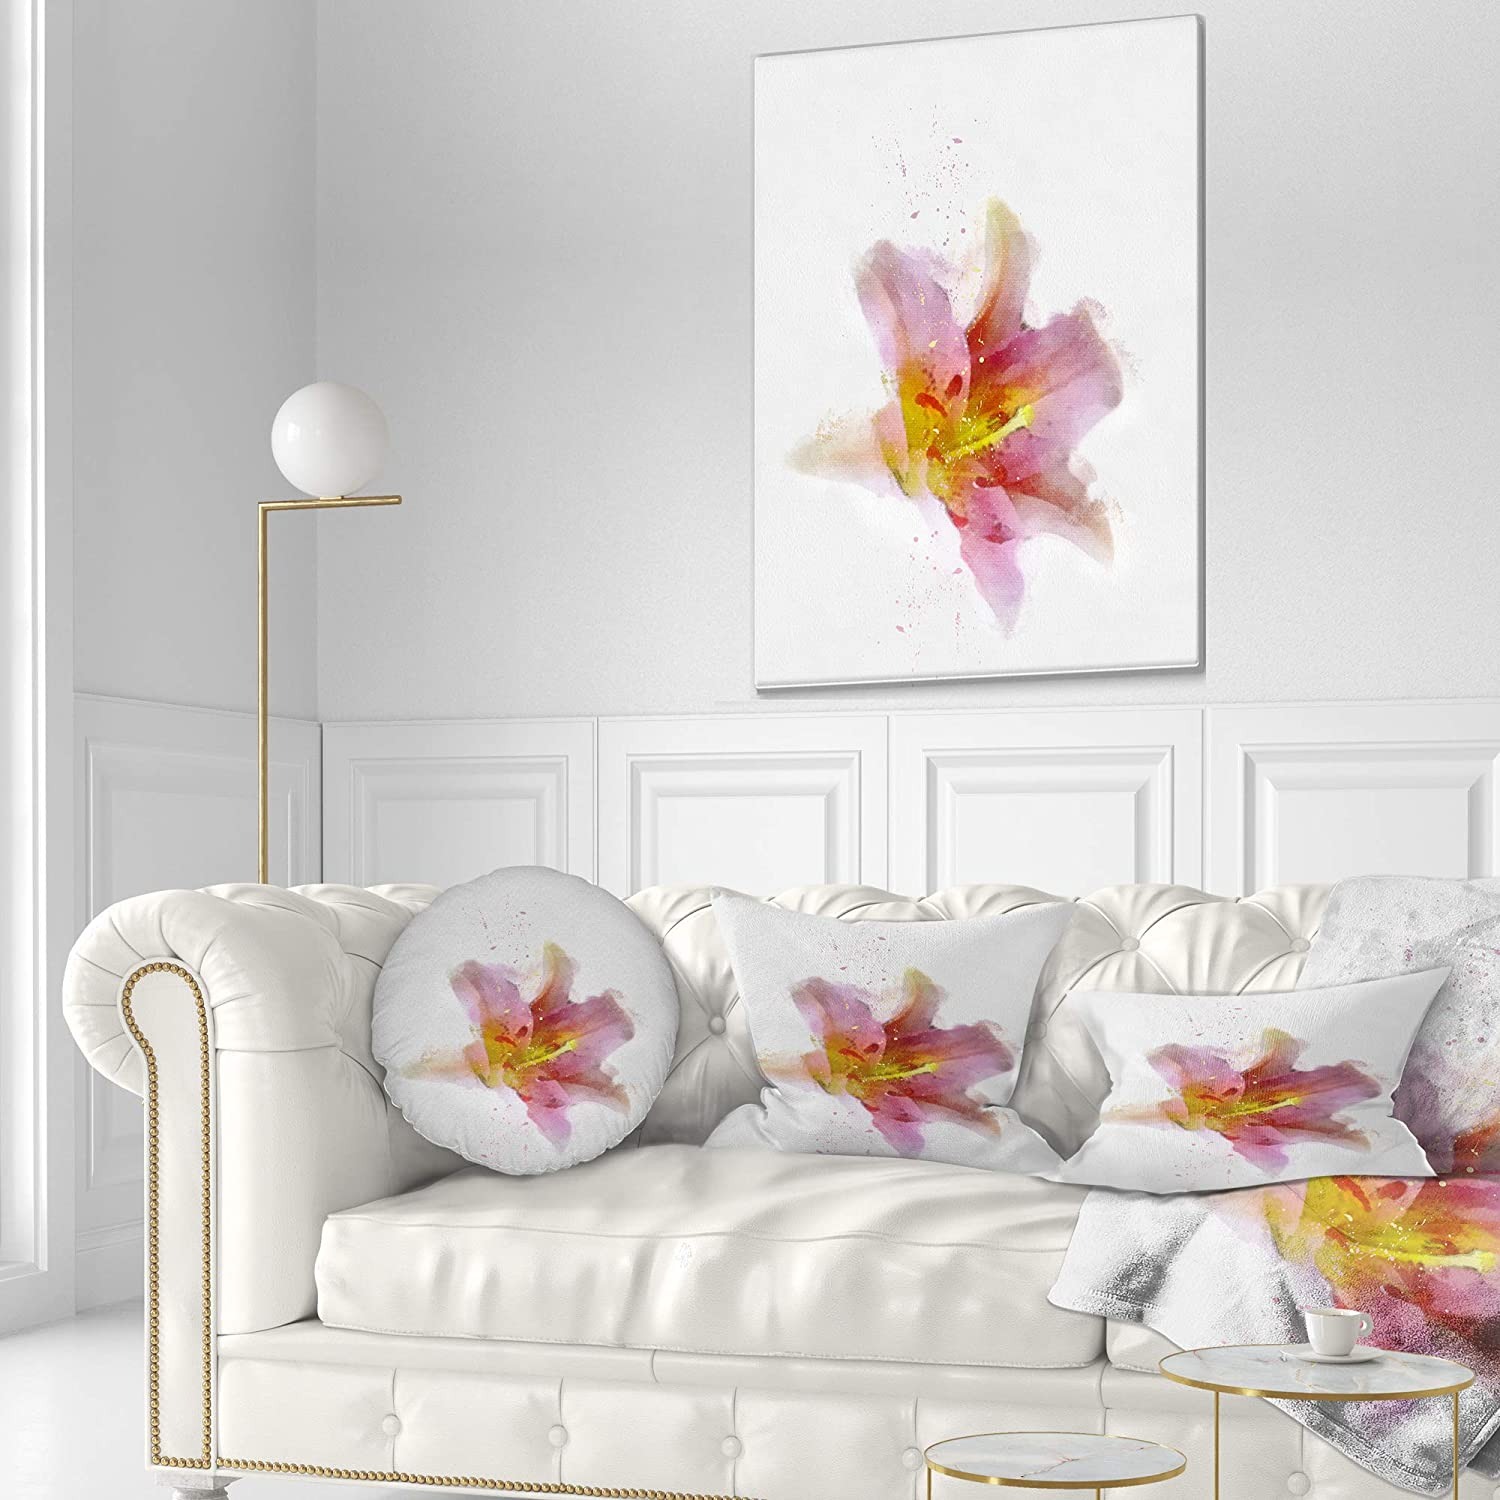 Sofa Throw Pillow 20 Designart Cu13717 20 20 C Watercolor Pink Lily Flower Sketch Floral Round